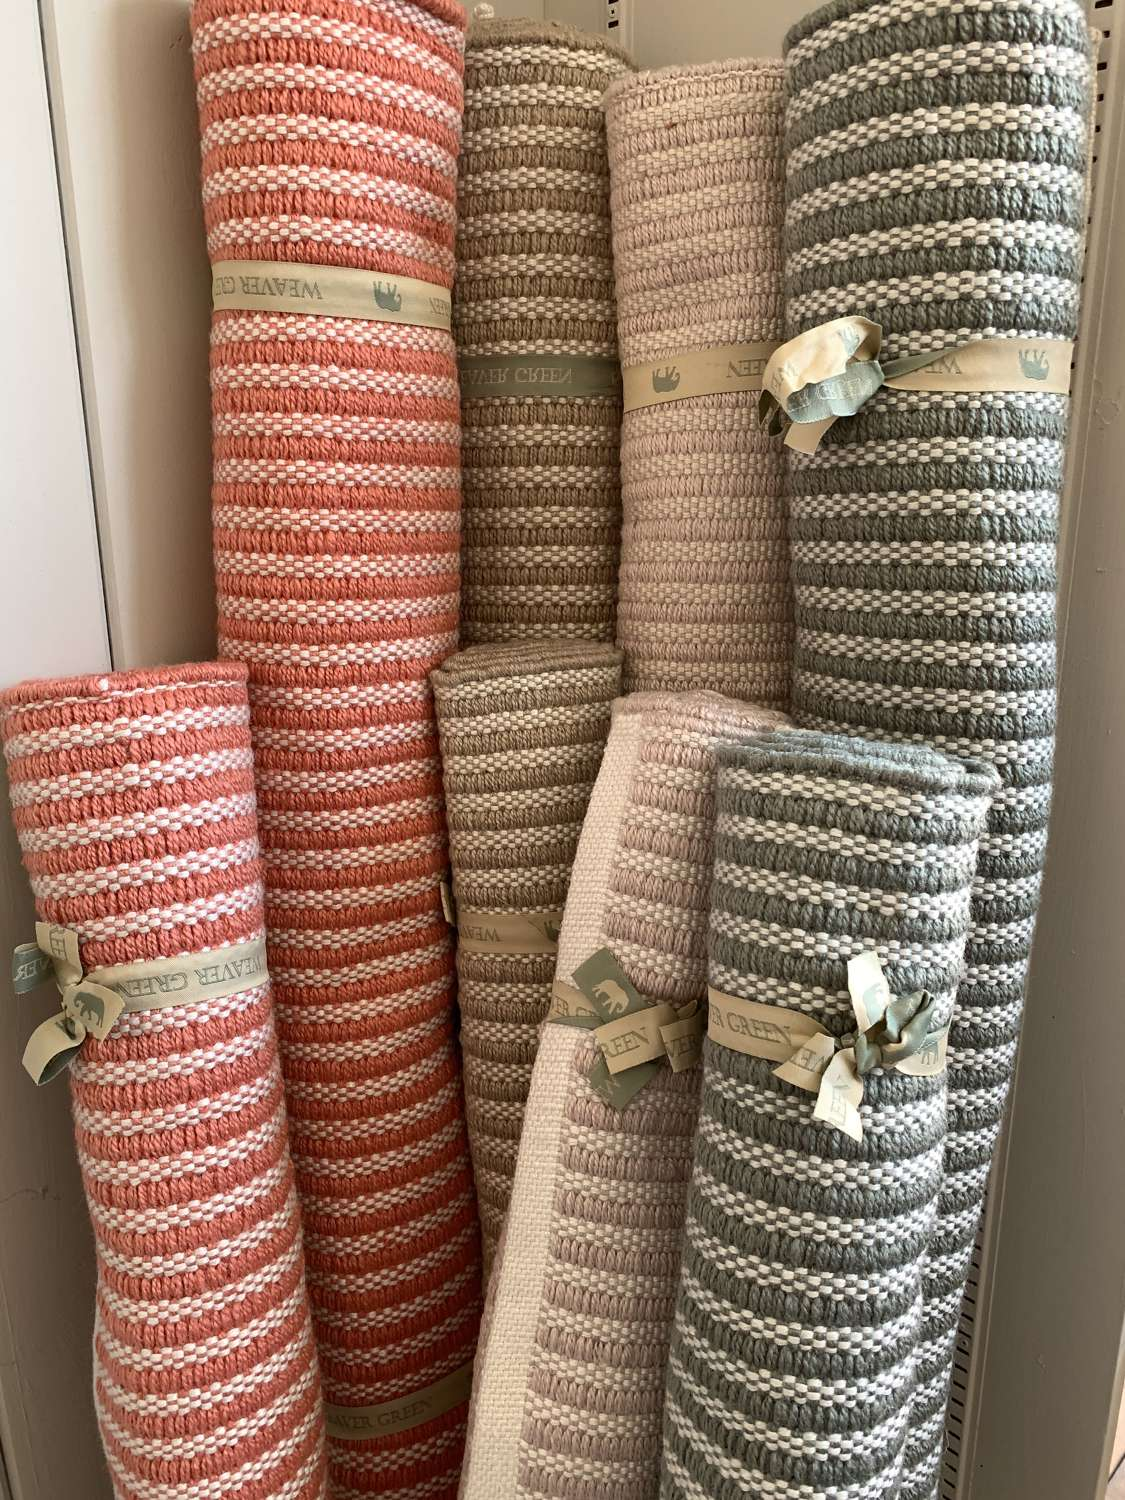 Weaver Green Rugs made from recycled plastic